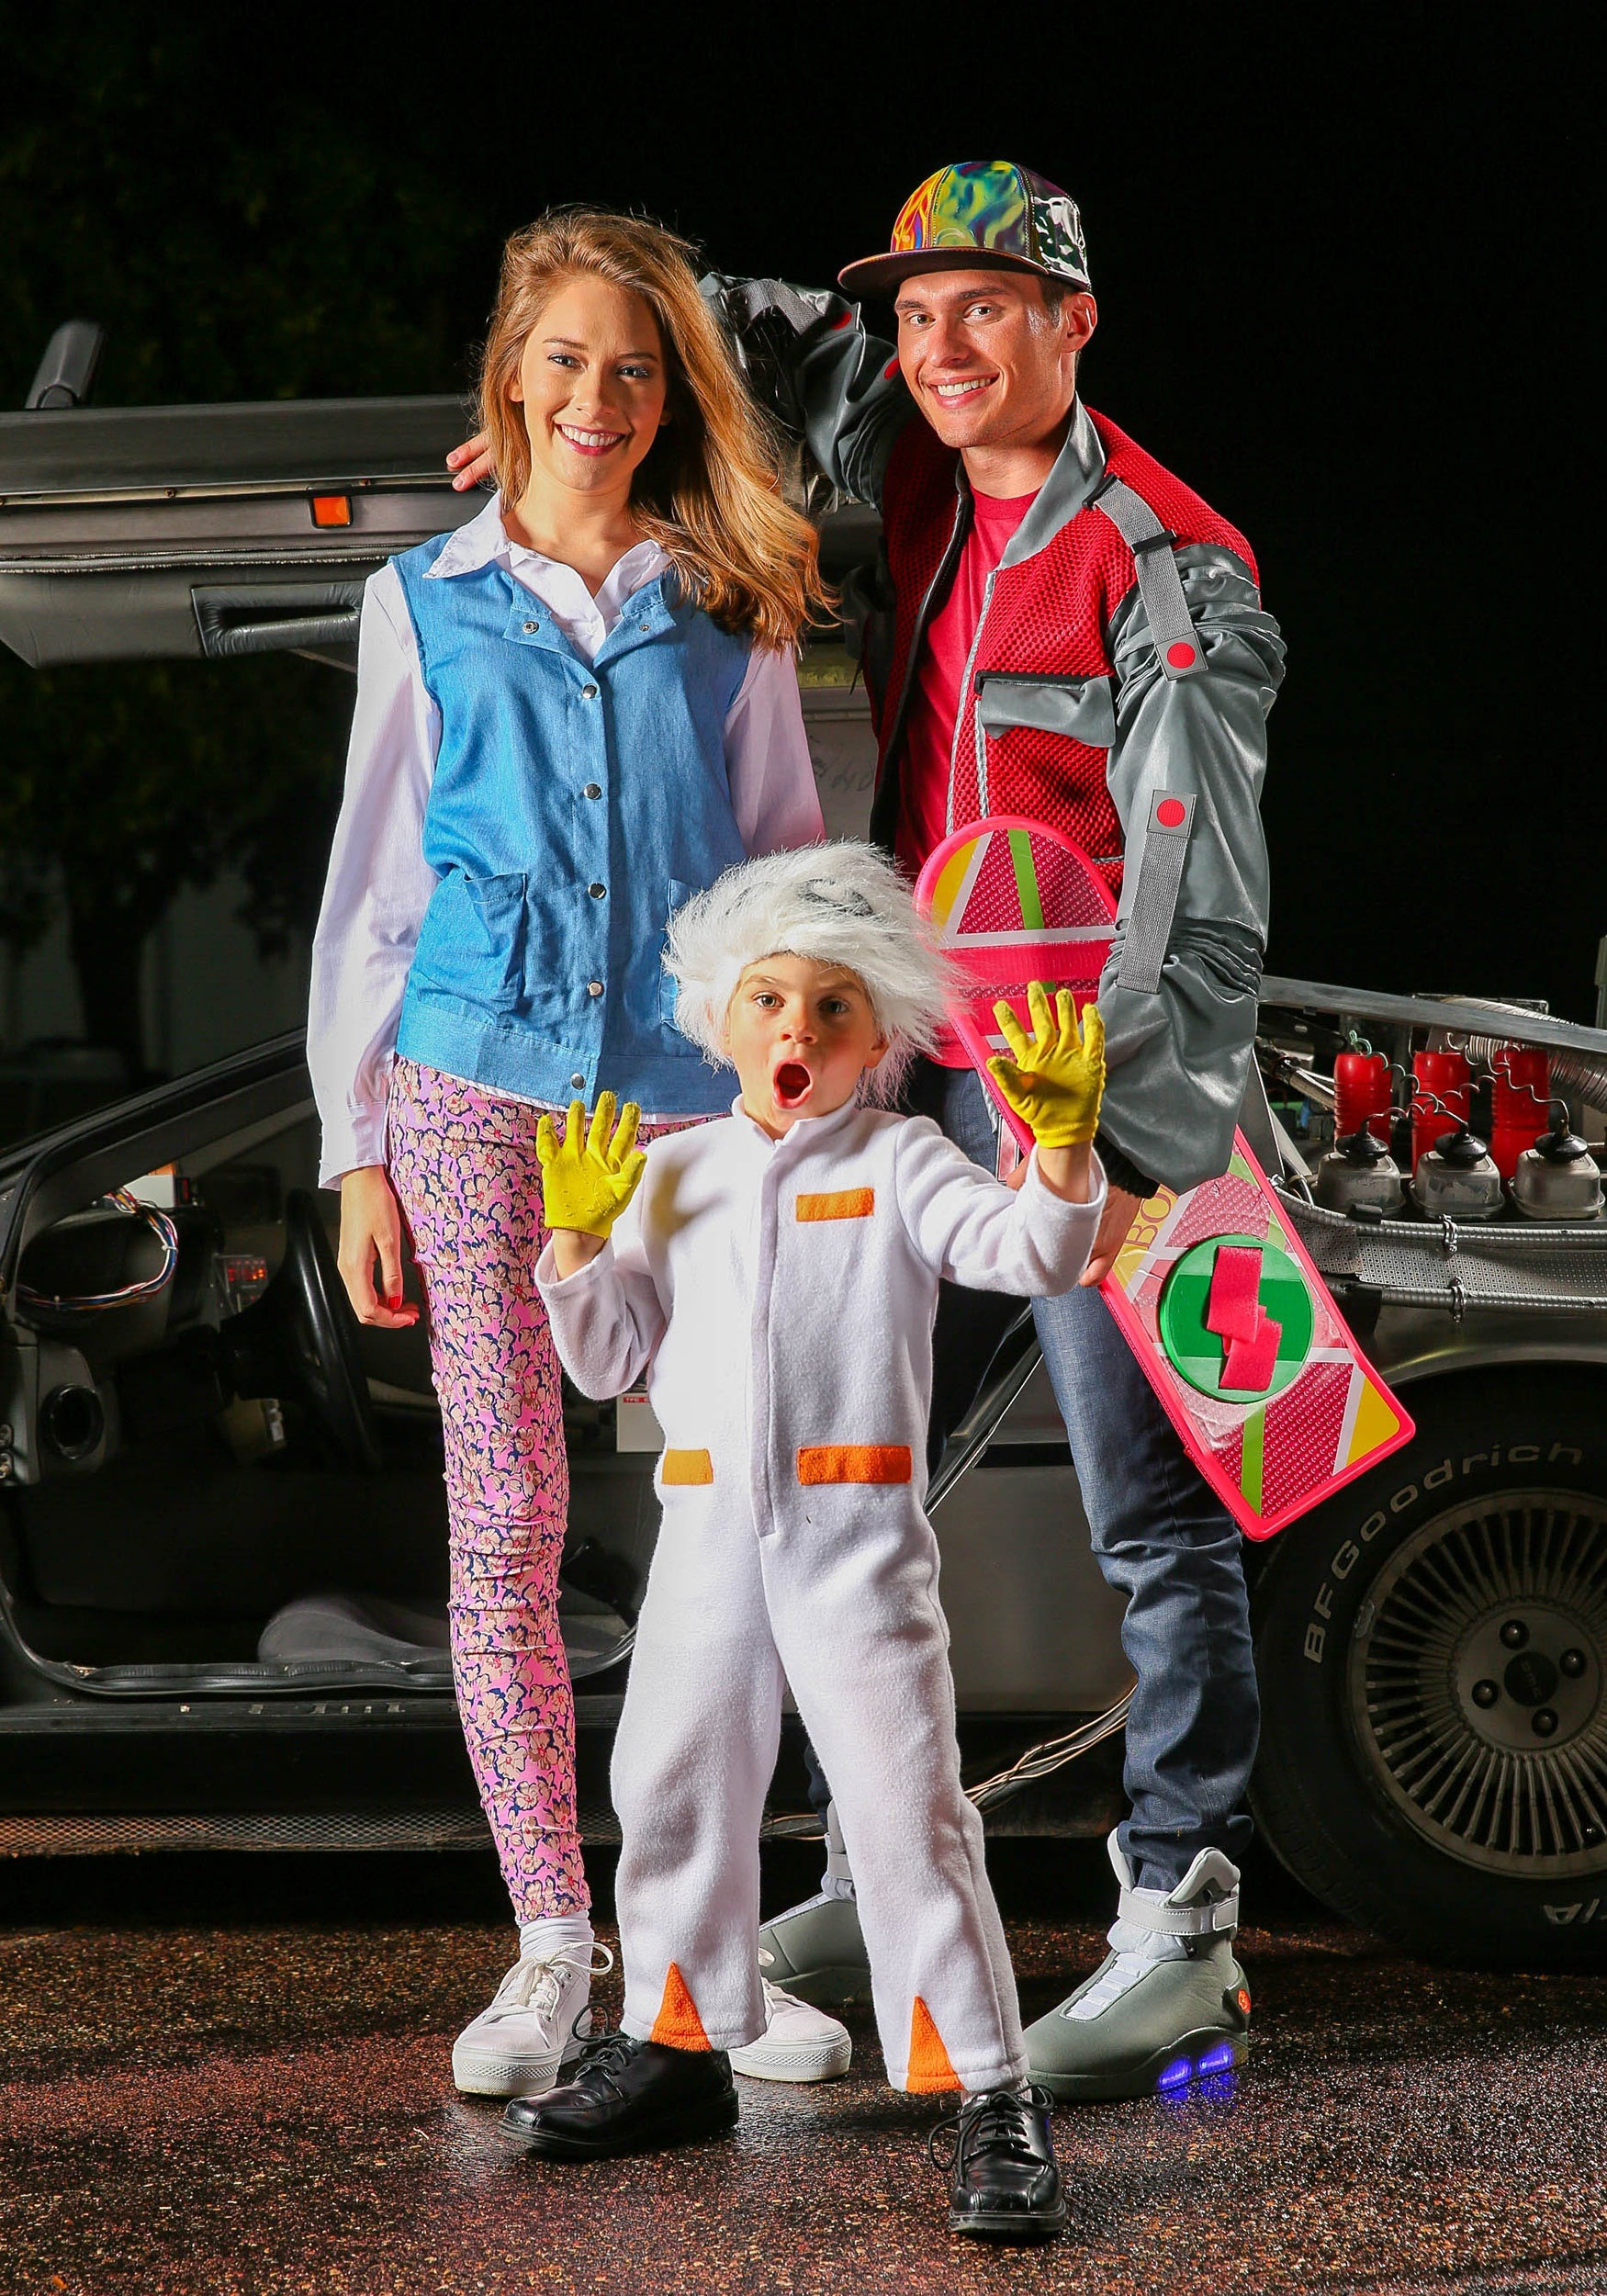 Halloween Decoration Ideas Home Back To The Future 2 Light Up Shoes